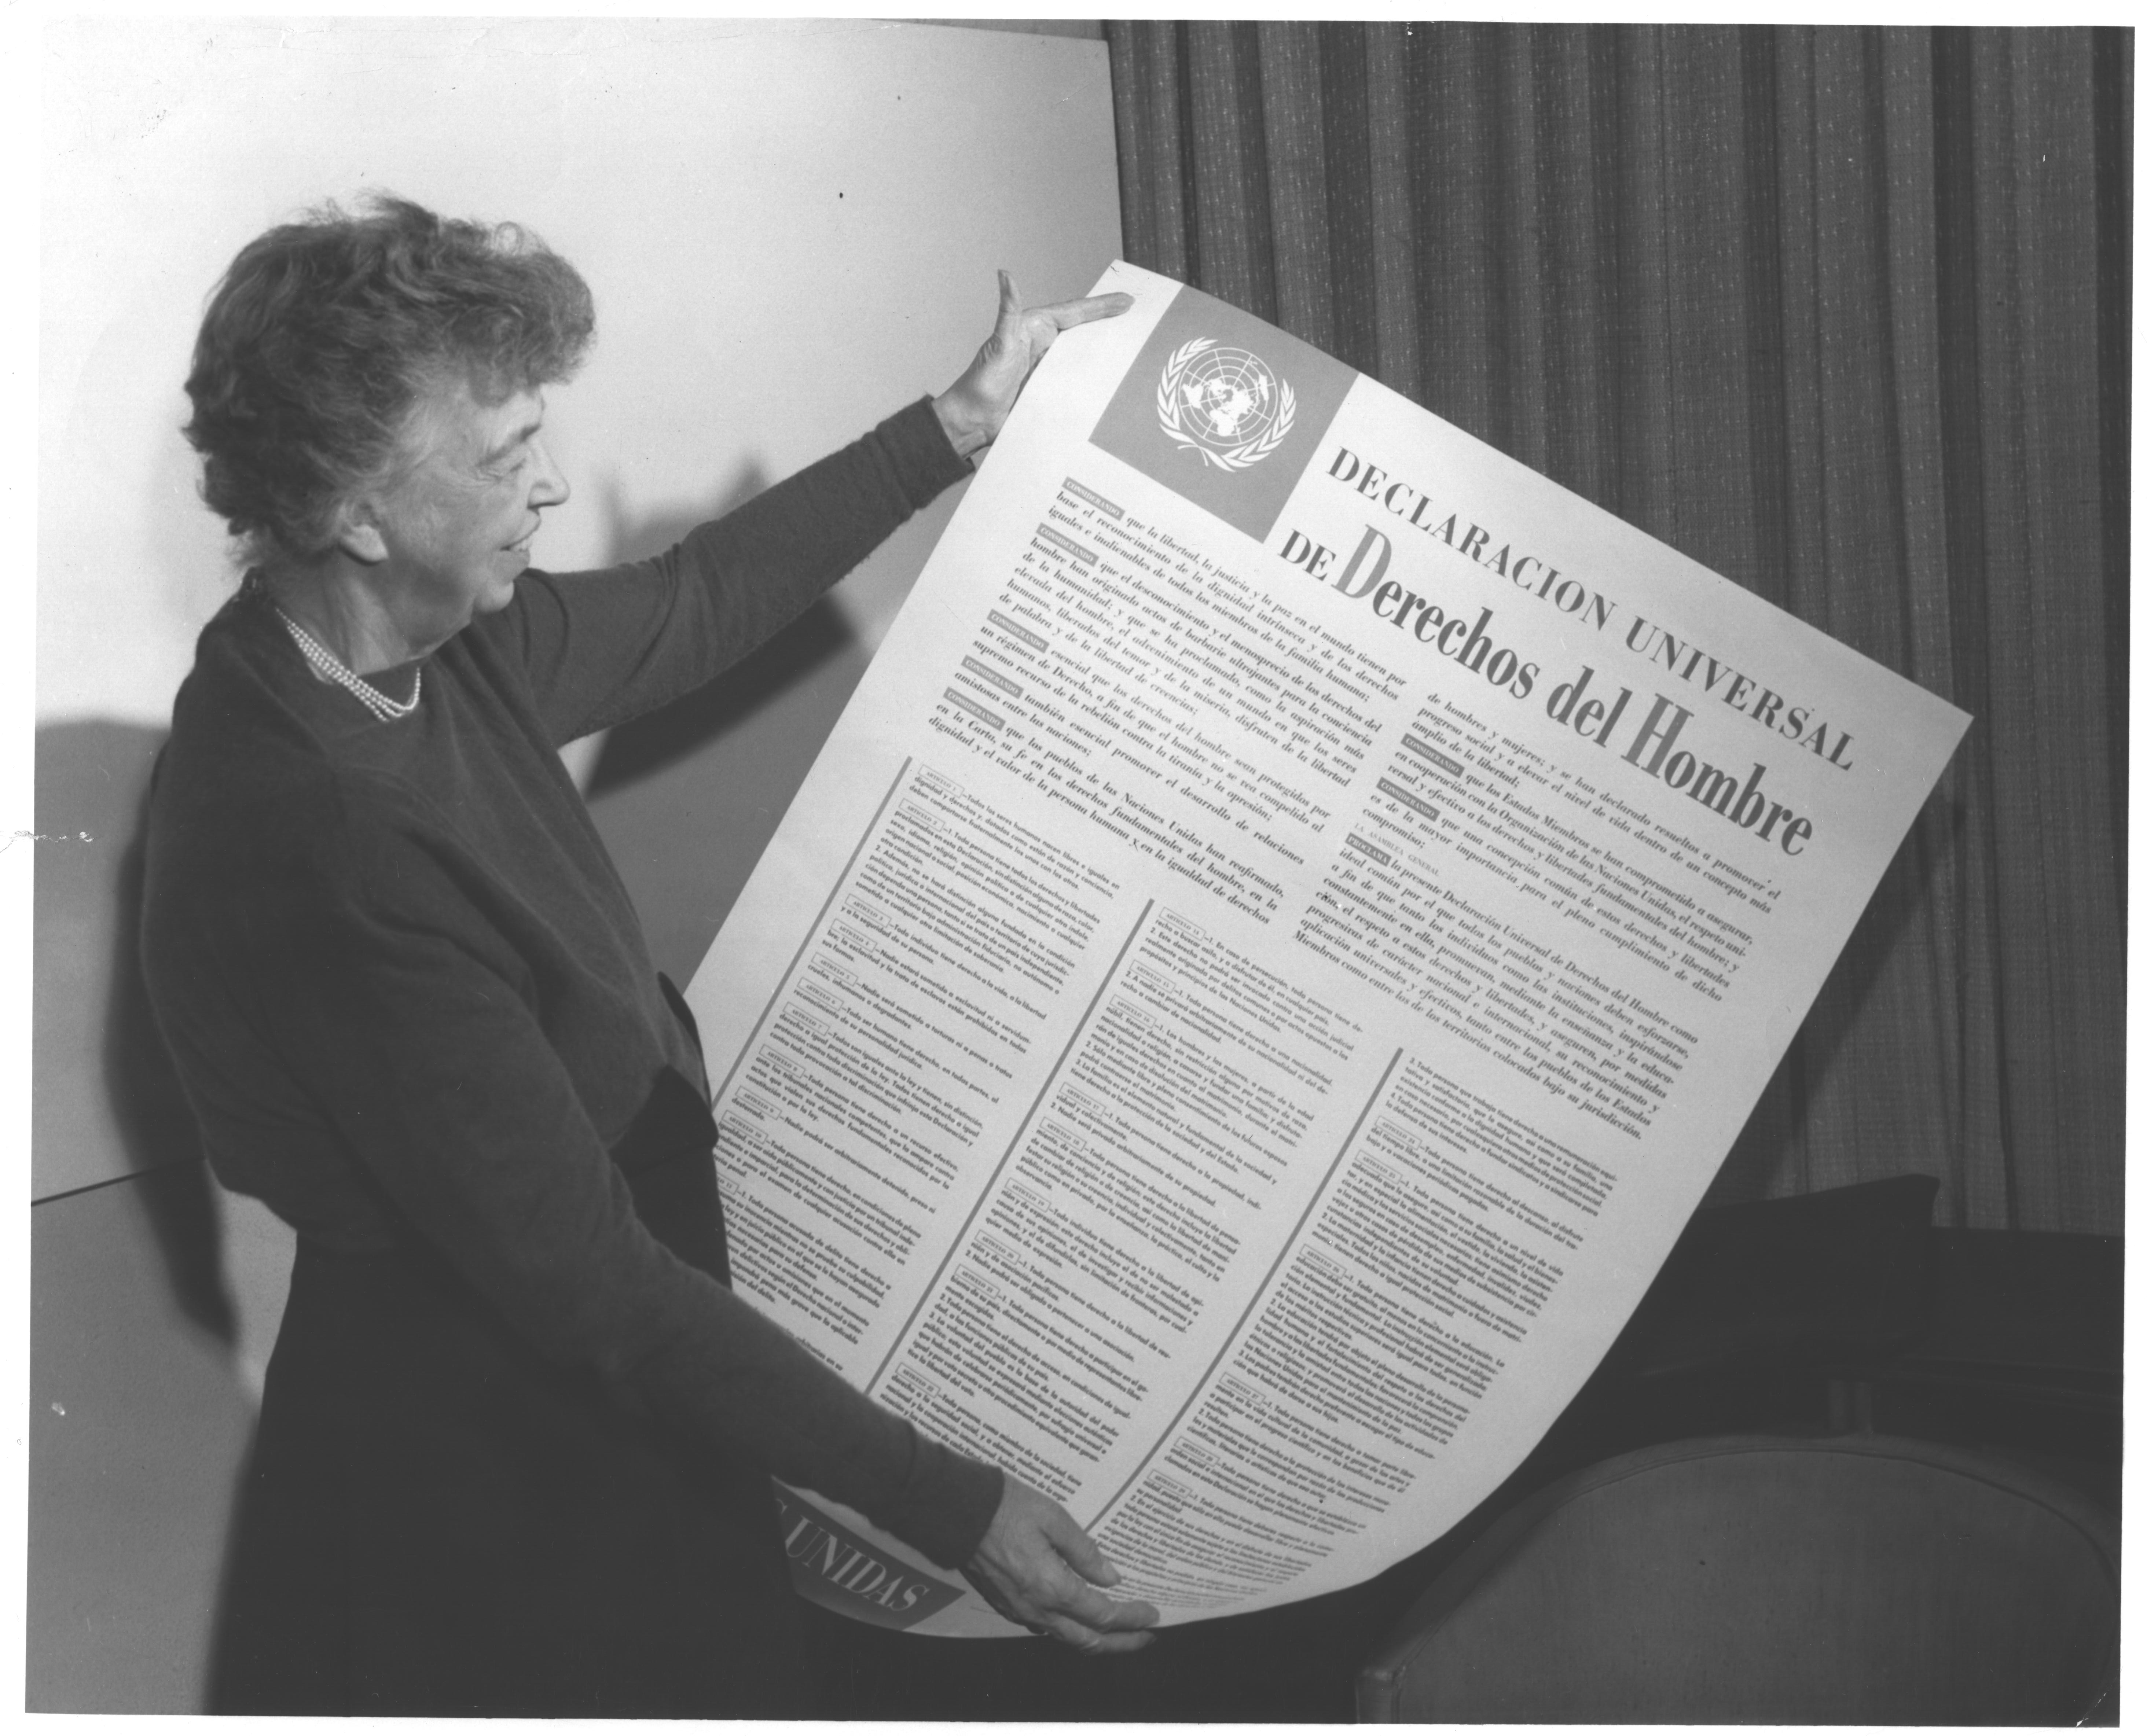 photos video brigid o farrell 1949 the universal declaration of human rights united nations franklin d roosevelt